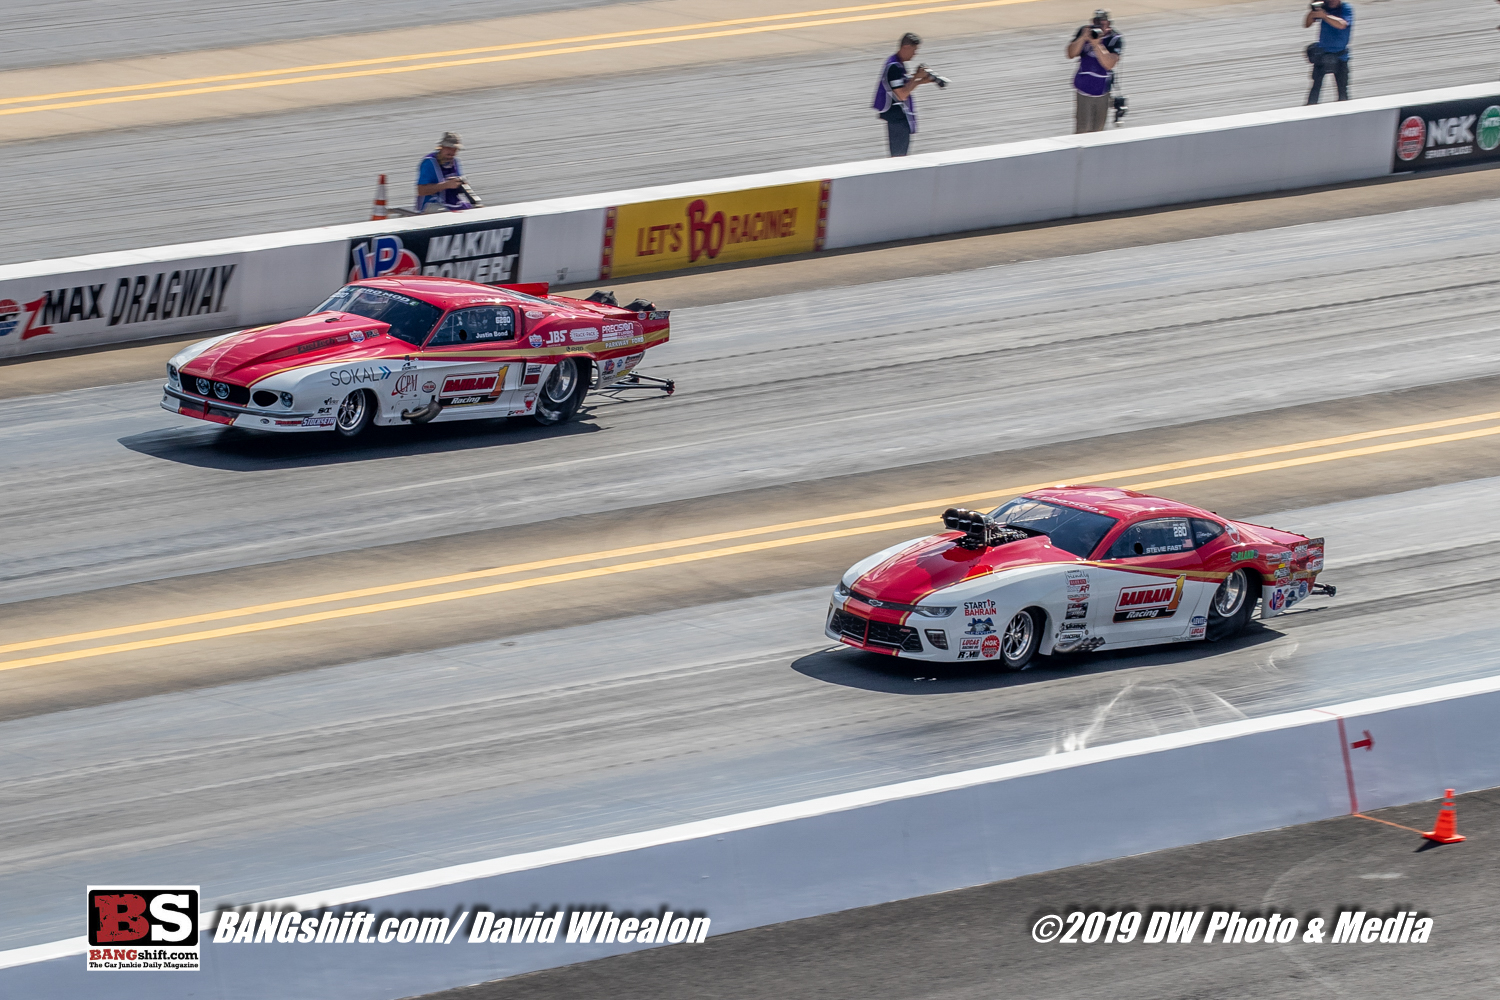 2019 NHRA Carolina Nationals Pro Mod Action Photos: A Wild, Controversial, and Fast Weekend!